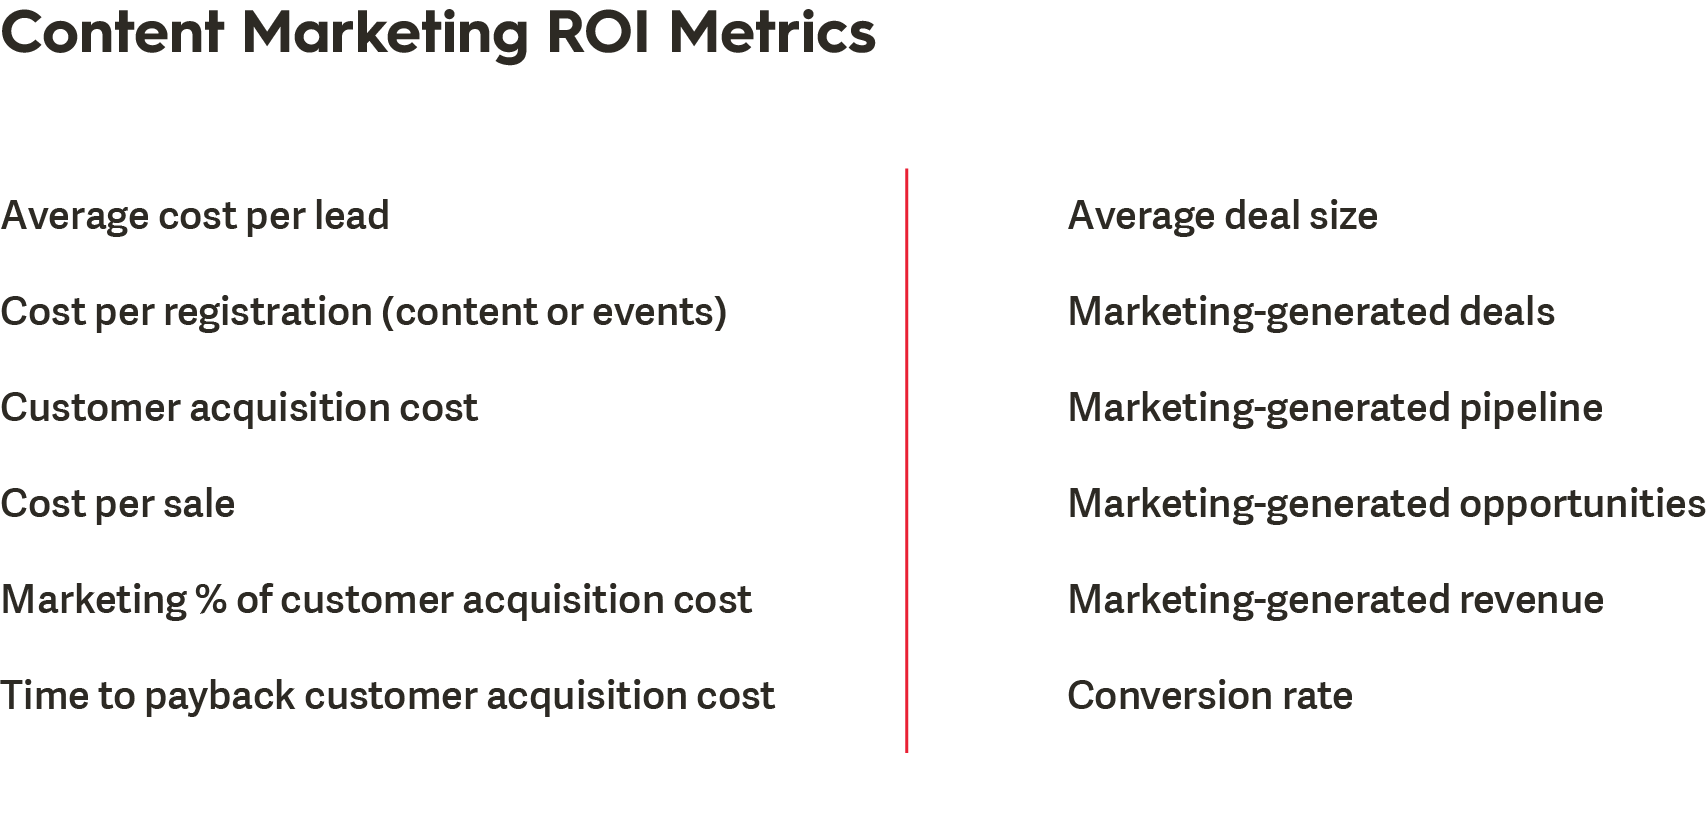 Content Marketing ROI Metrics.png